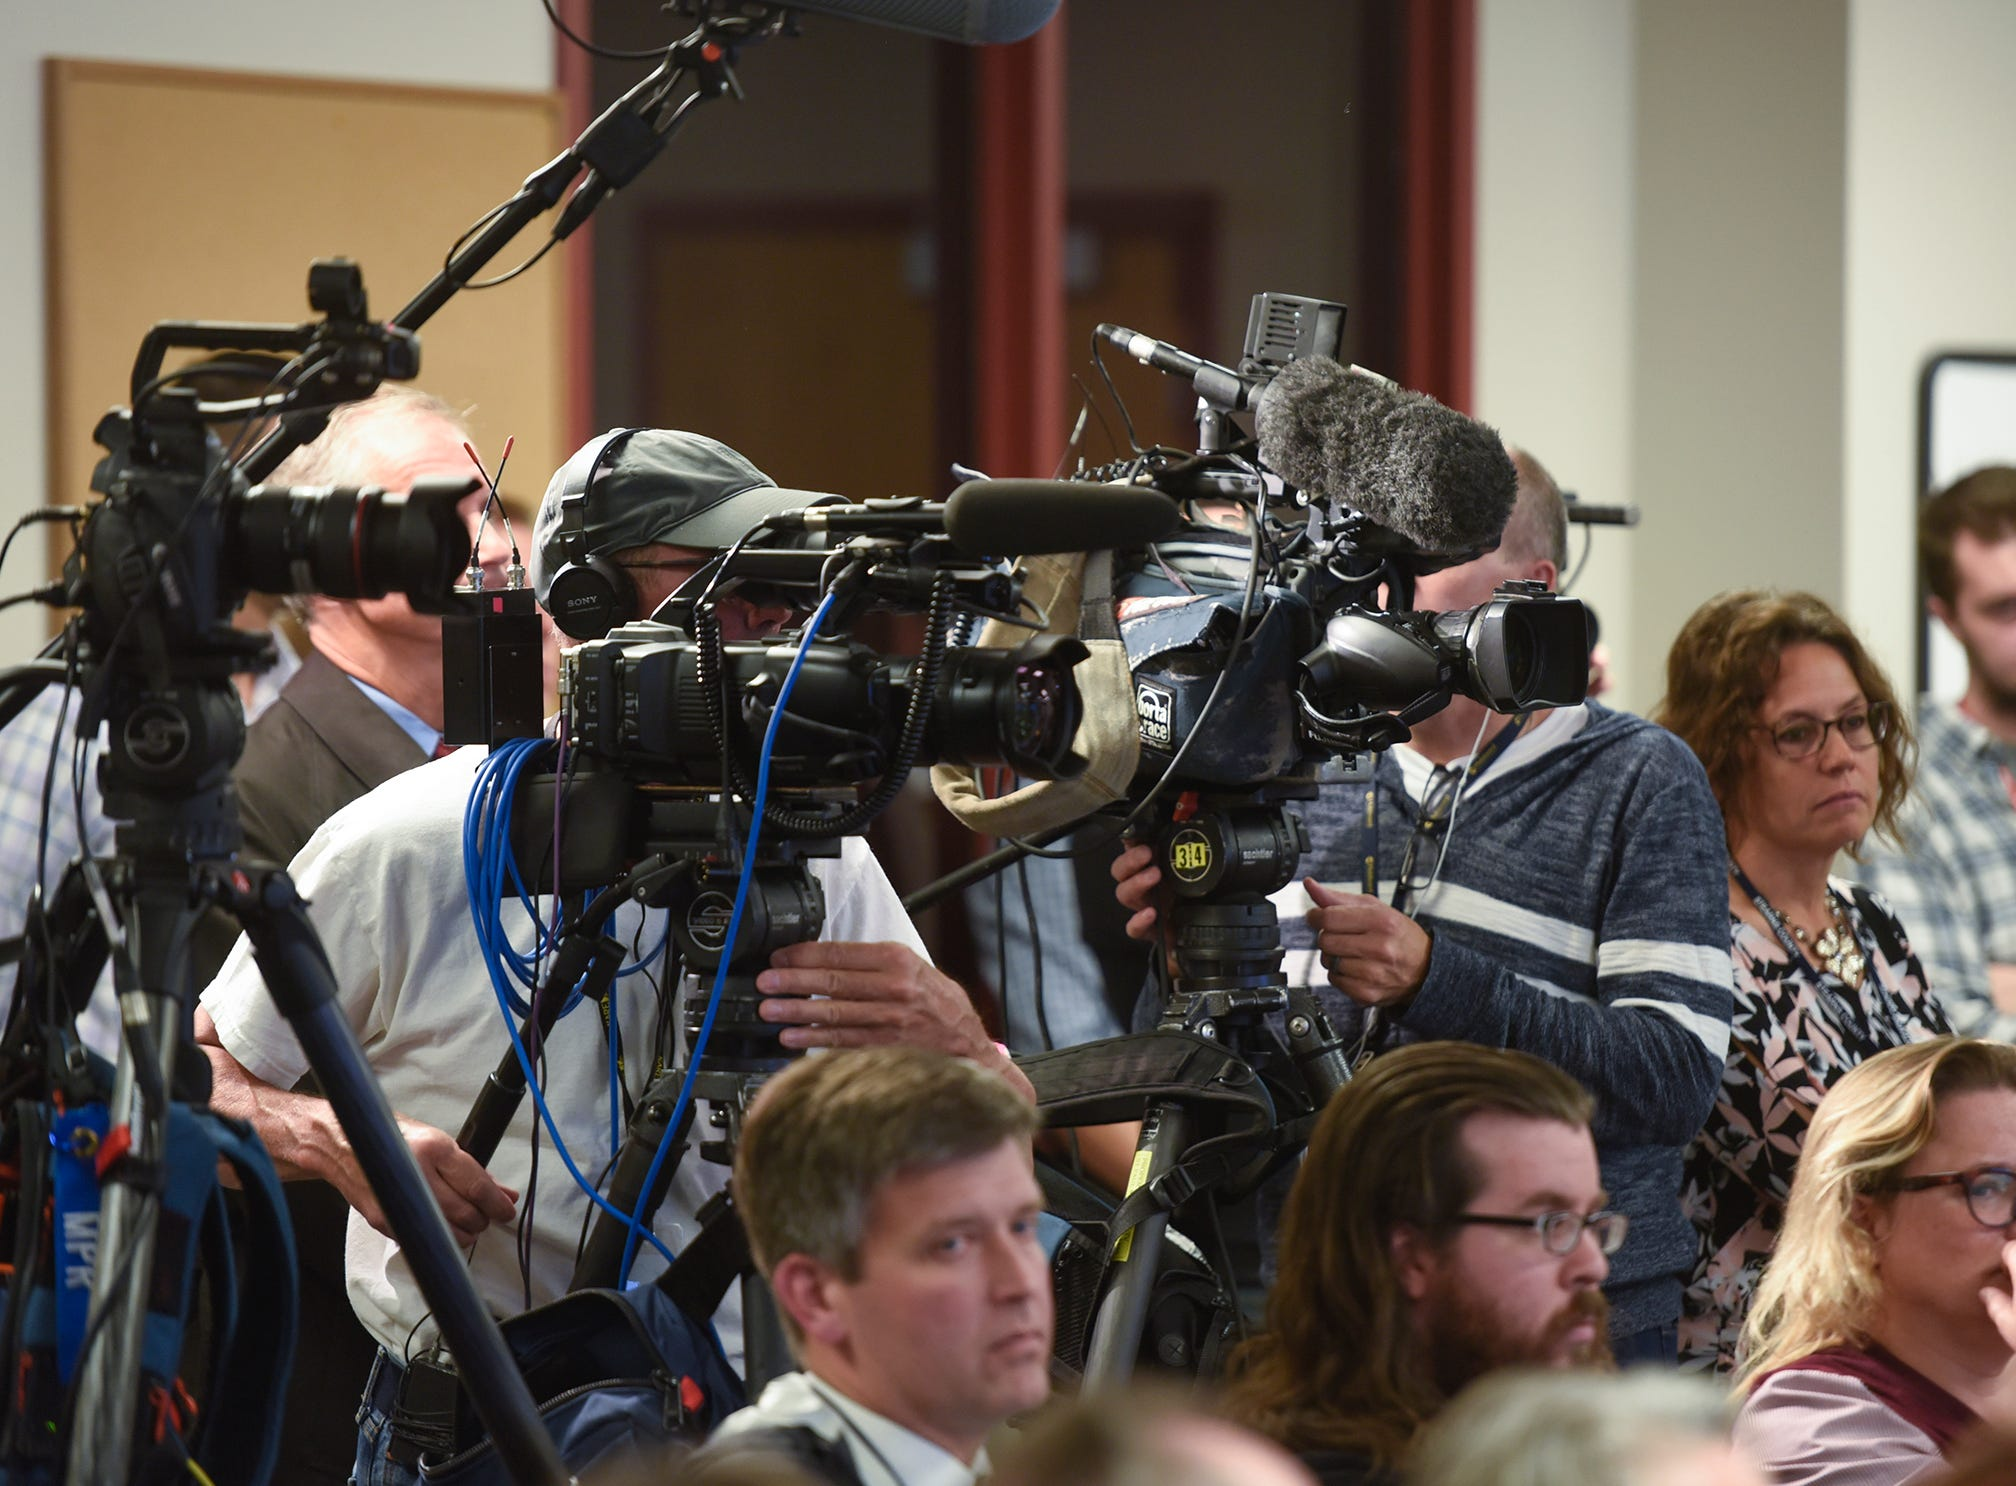 Cameras are pointed at the podium during a press conference for the release of investigative files in the Jacob Wetterling case Thursday, Sept. 20, 2018, in St. Cloud.